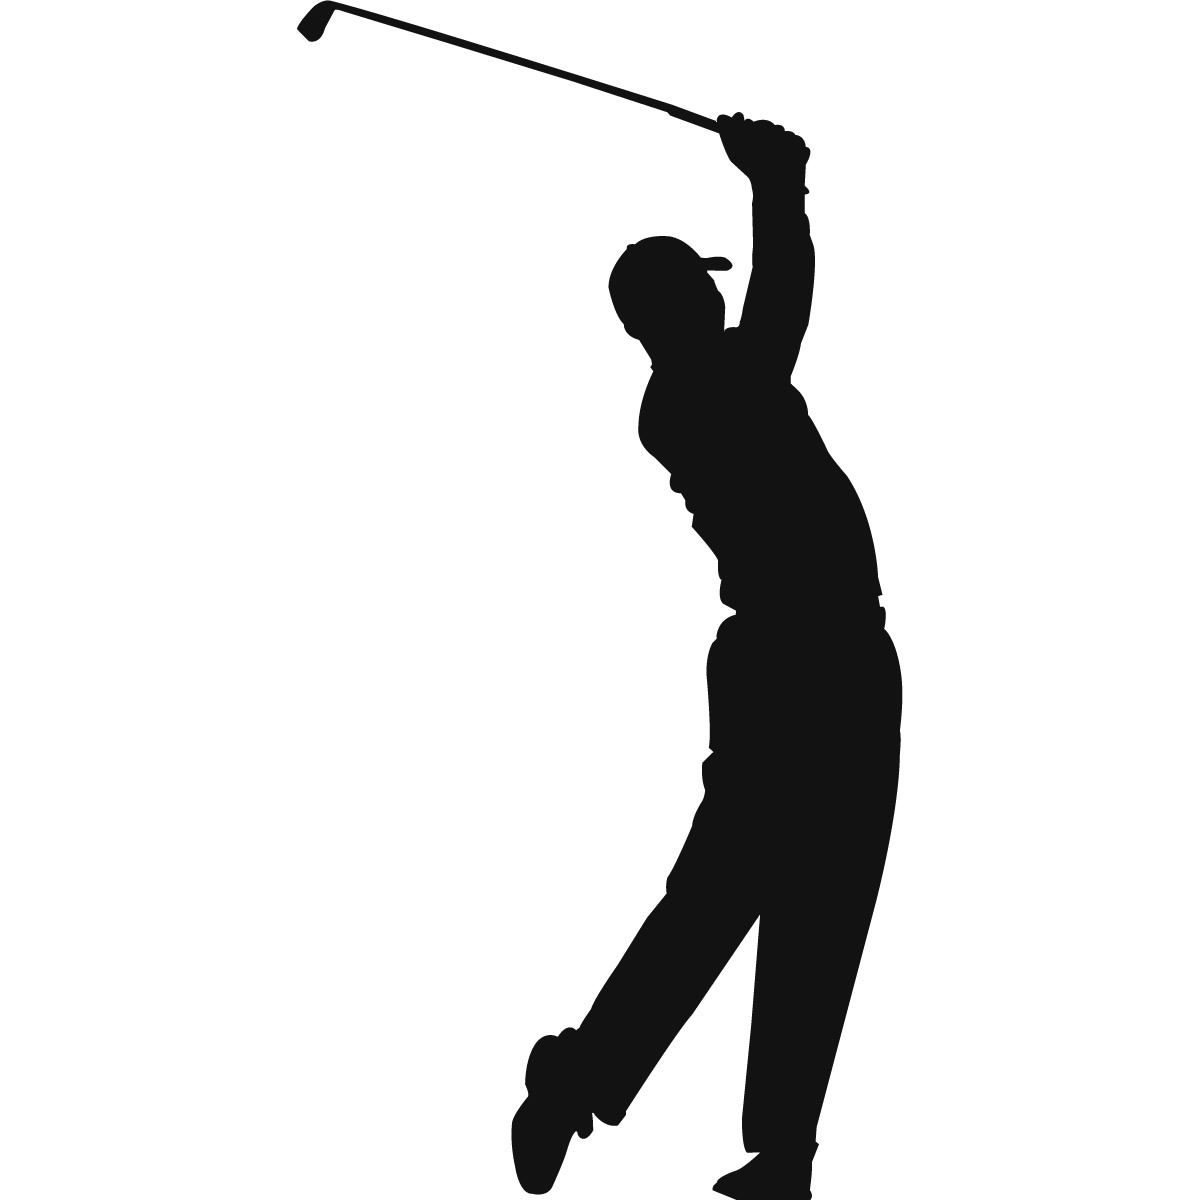 Tiger woods clipart.